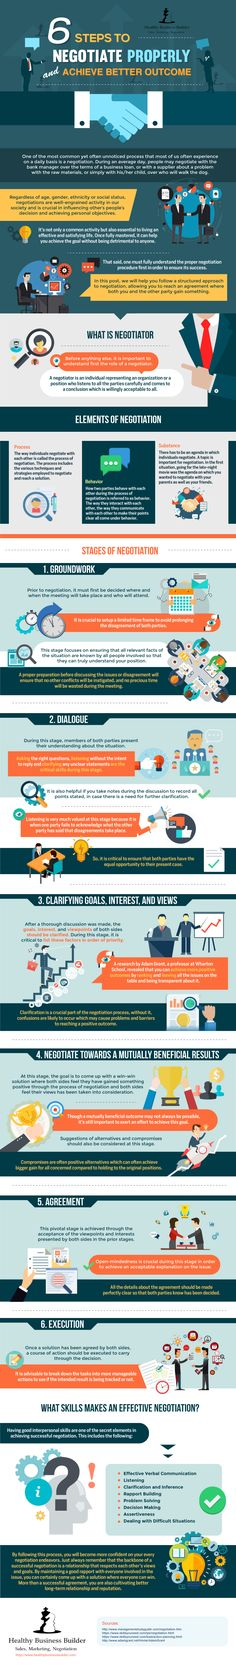 How to Become an Effective Negotiator in 6 Easy Steps - Infographic